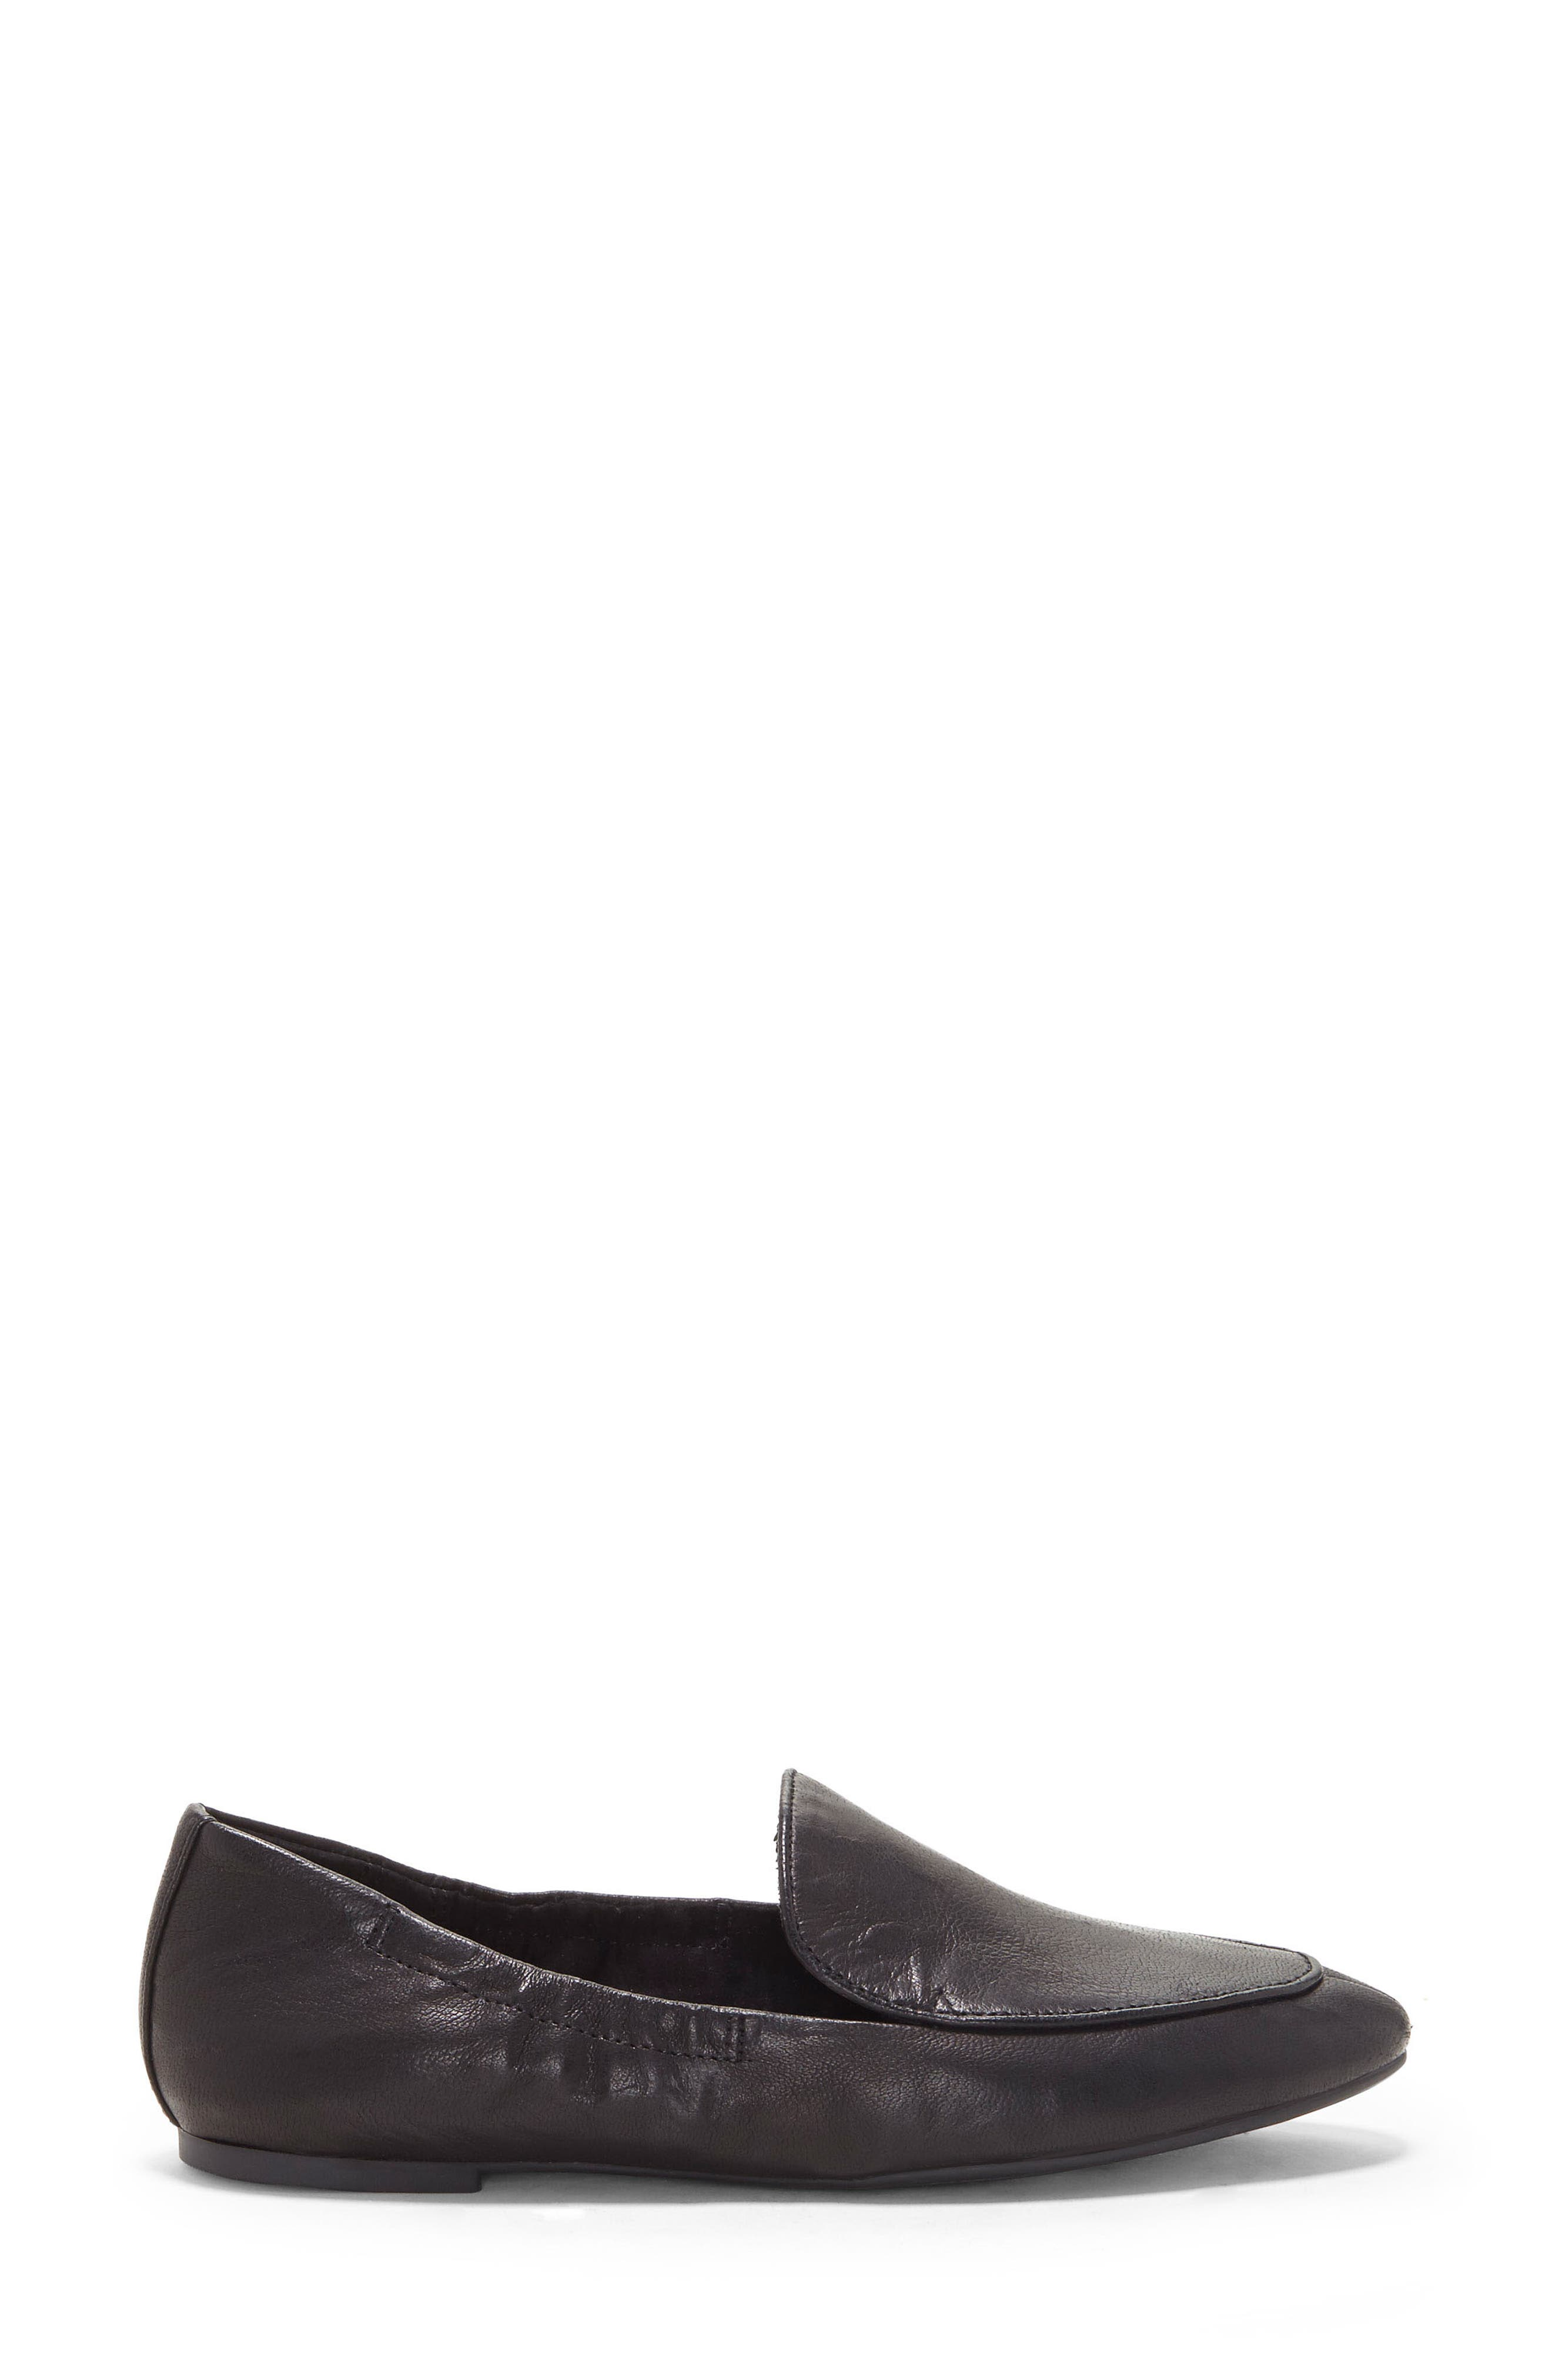 LUCKY BRAND, Bellana Loafer, Alternate thumbnail 3, color, BLACK LEATHER